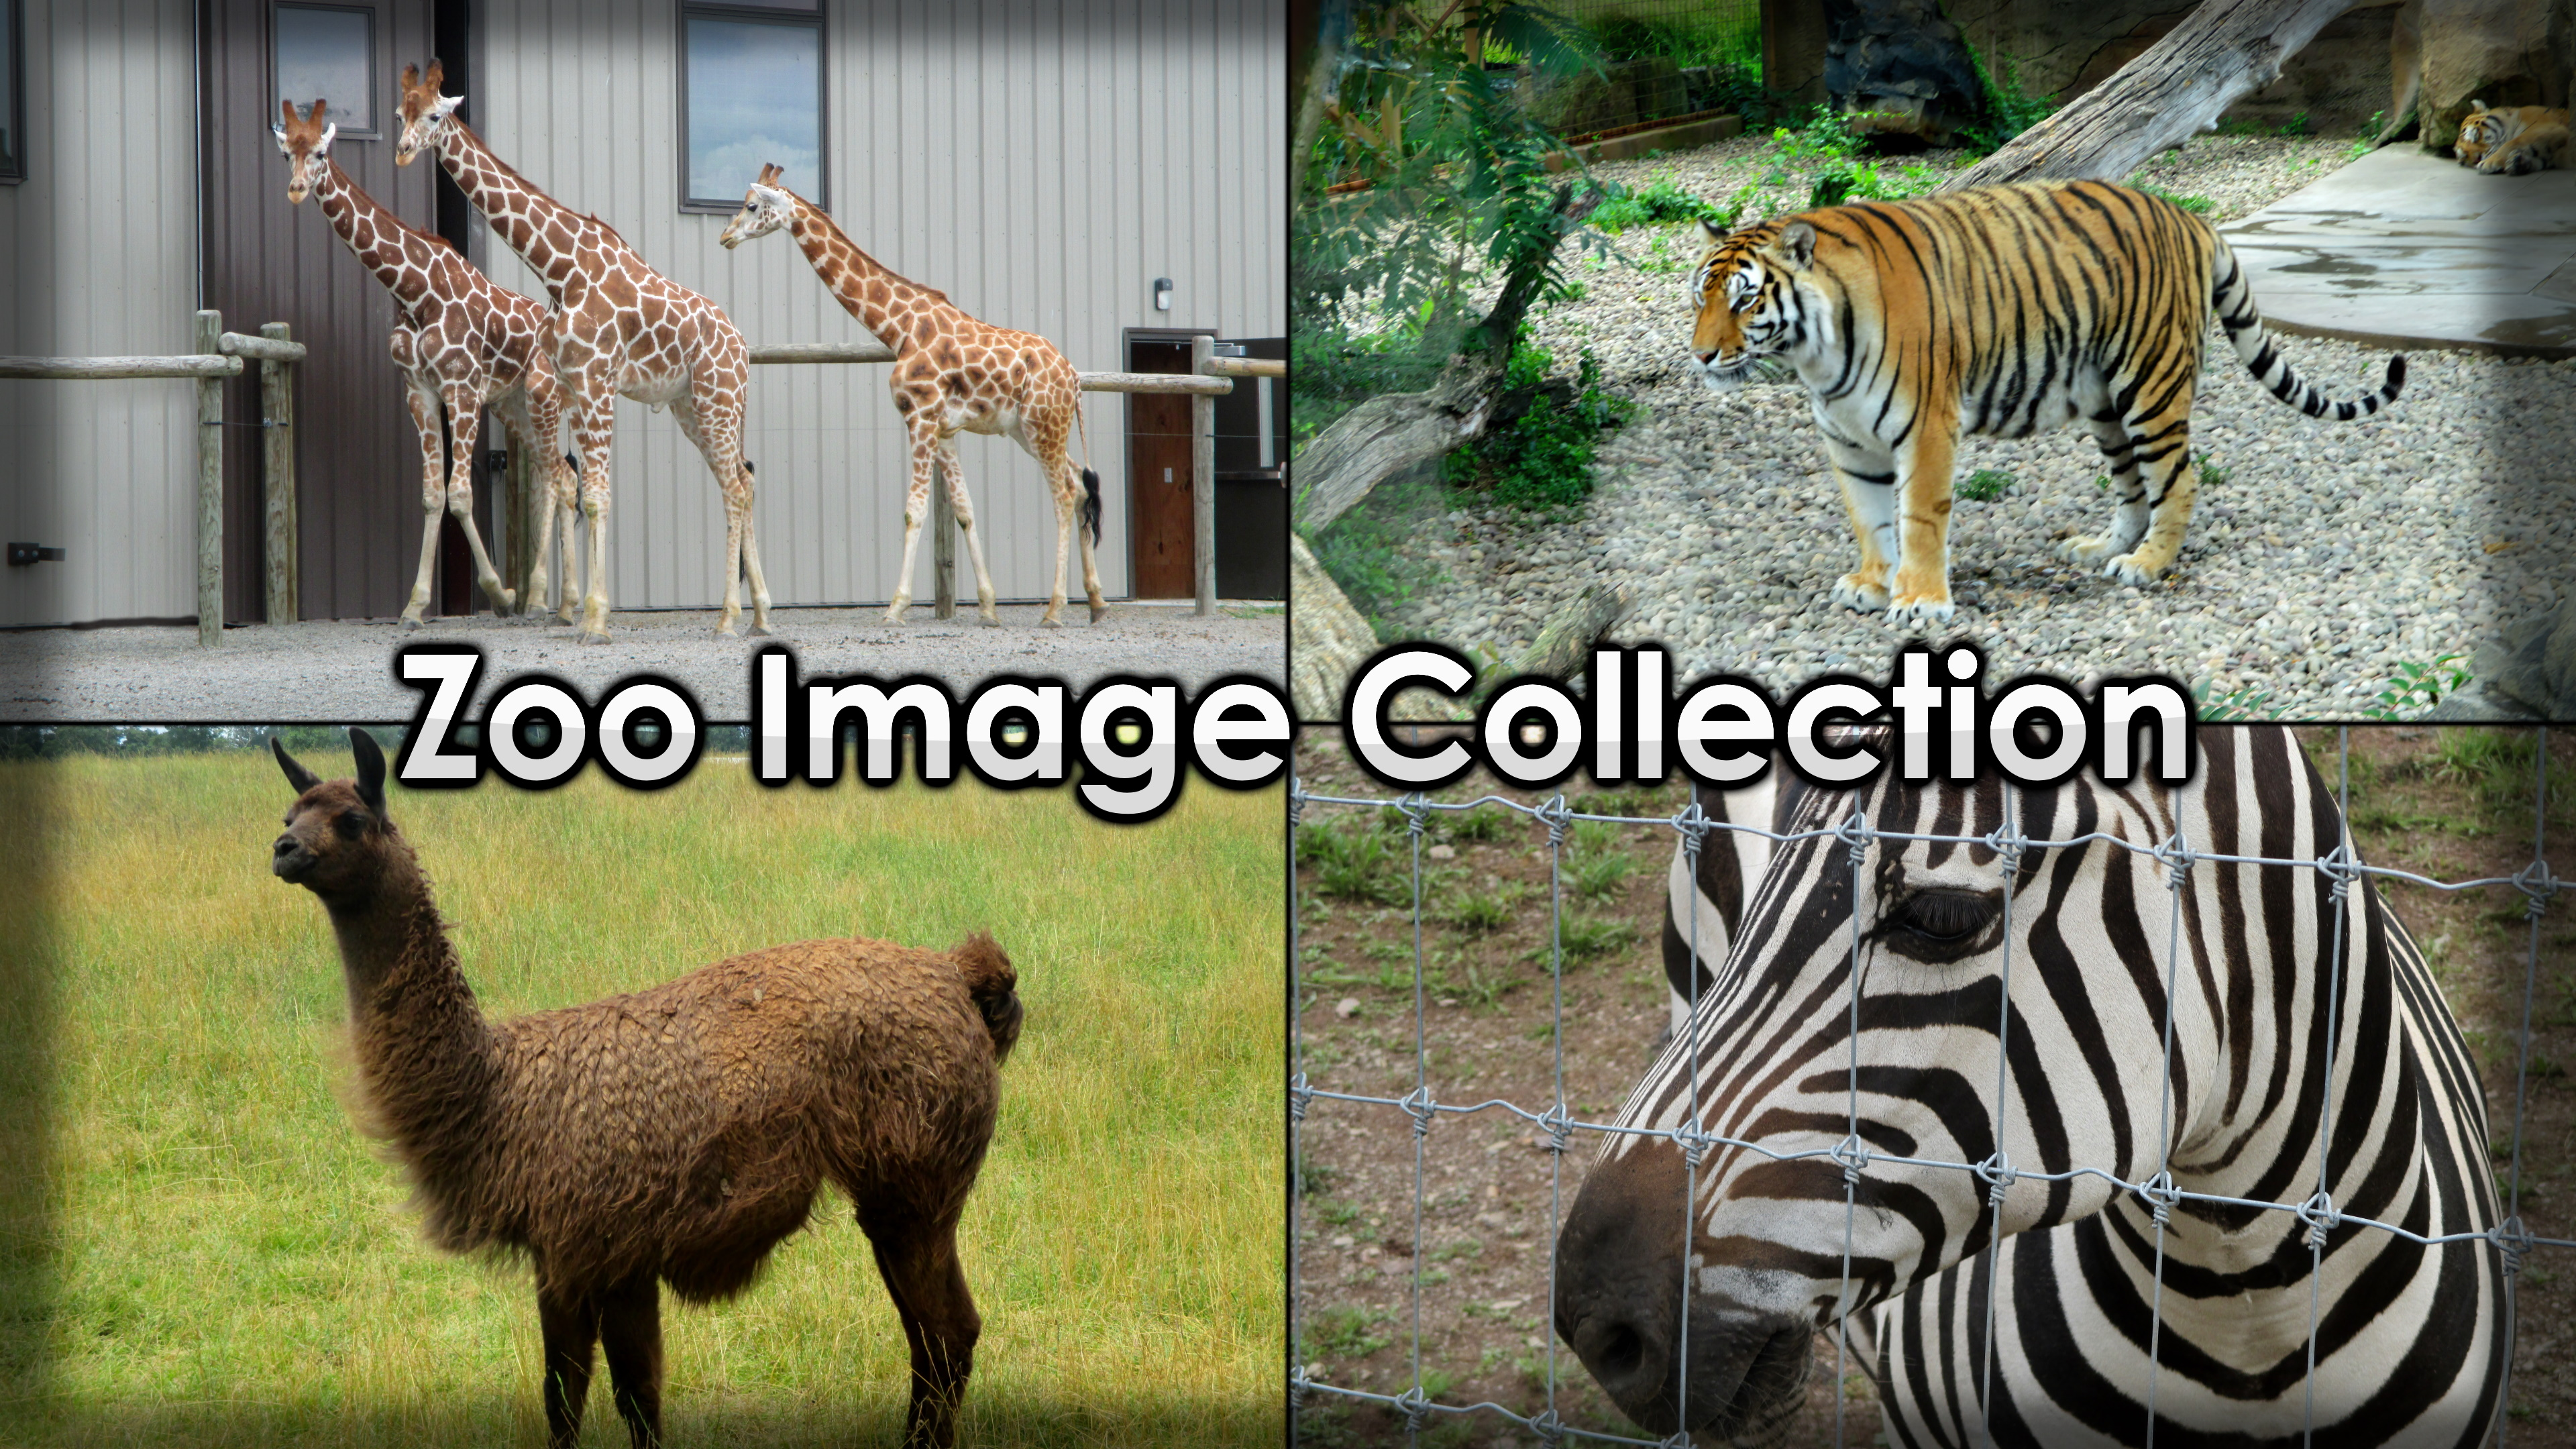 Zoo Image Collection